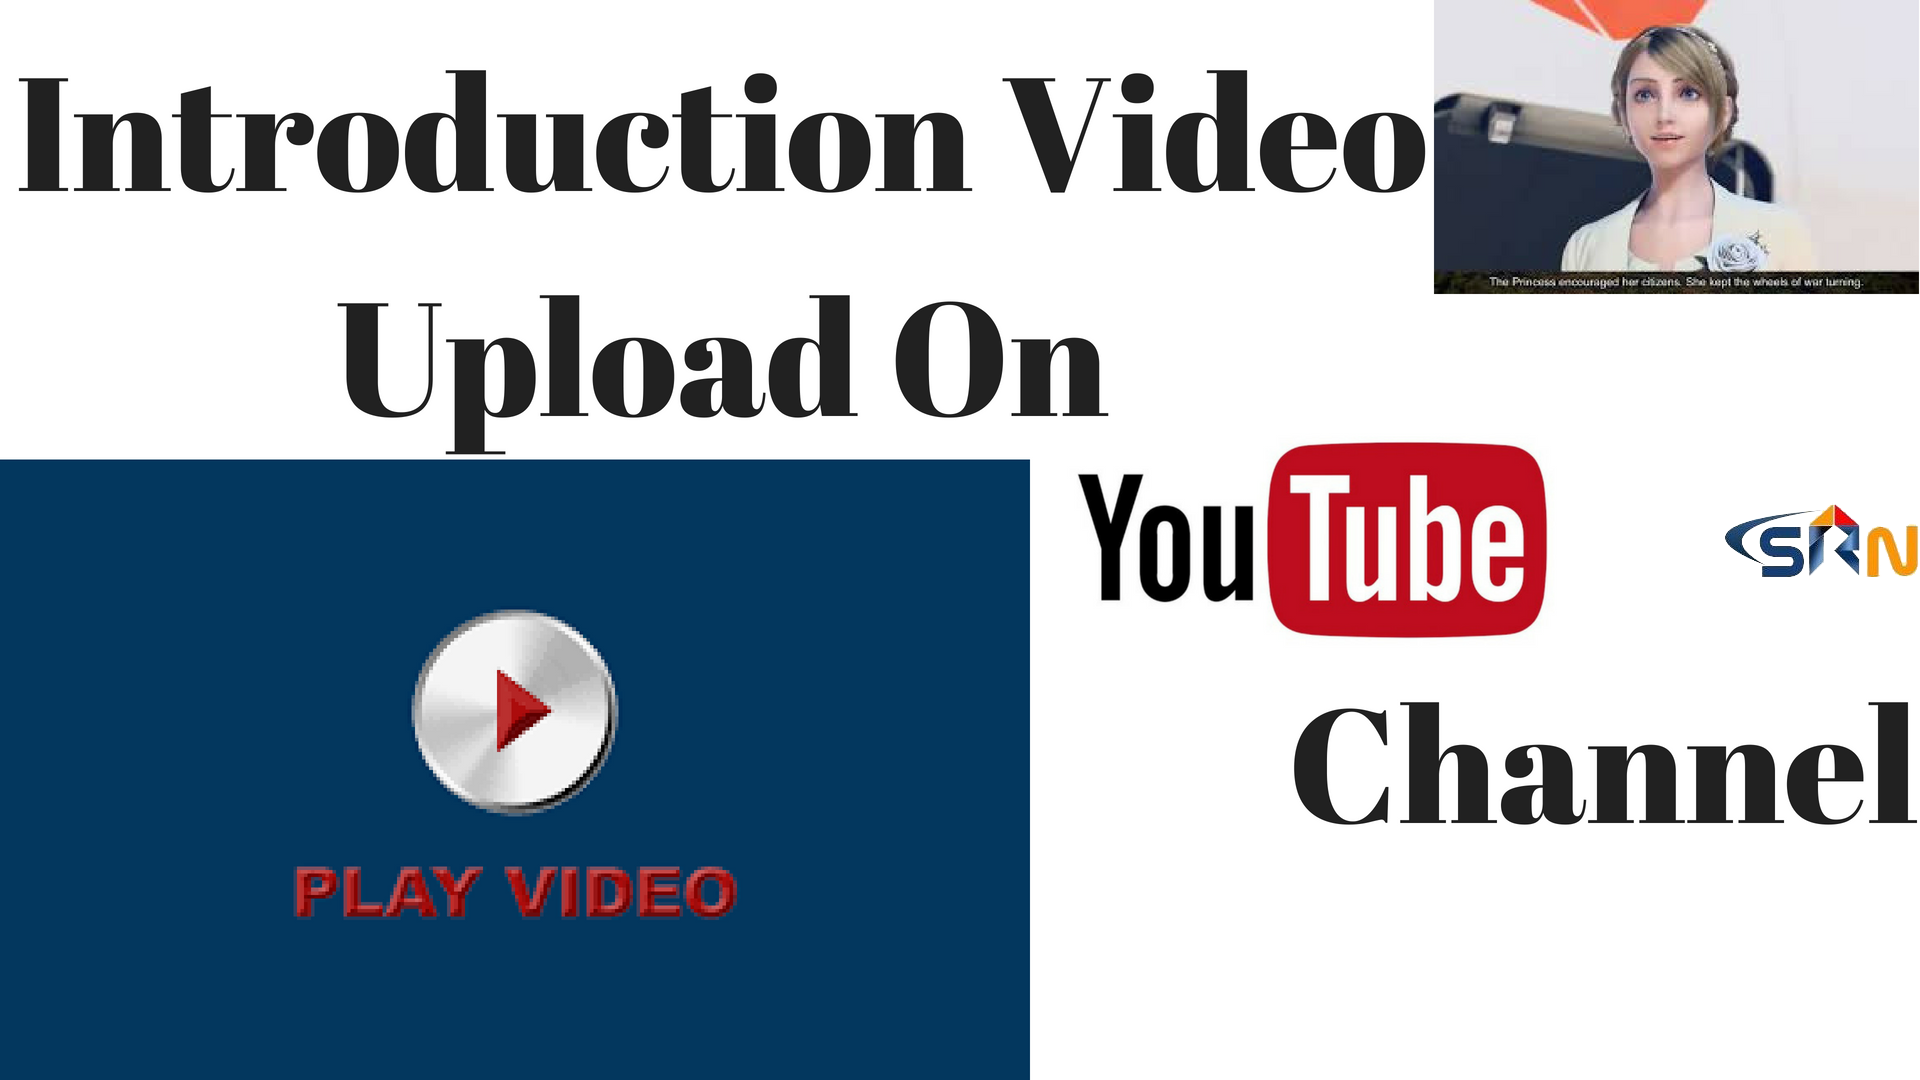 Introduction Video Upload On YouTube Channel